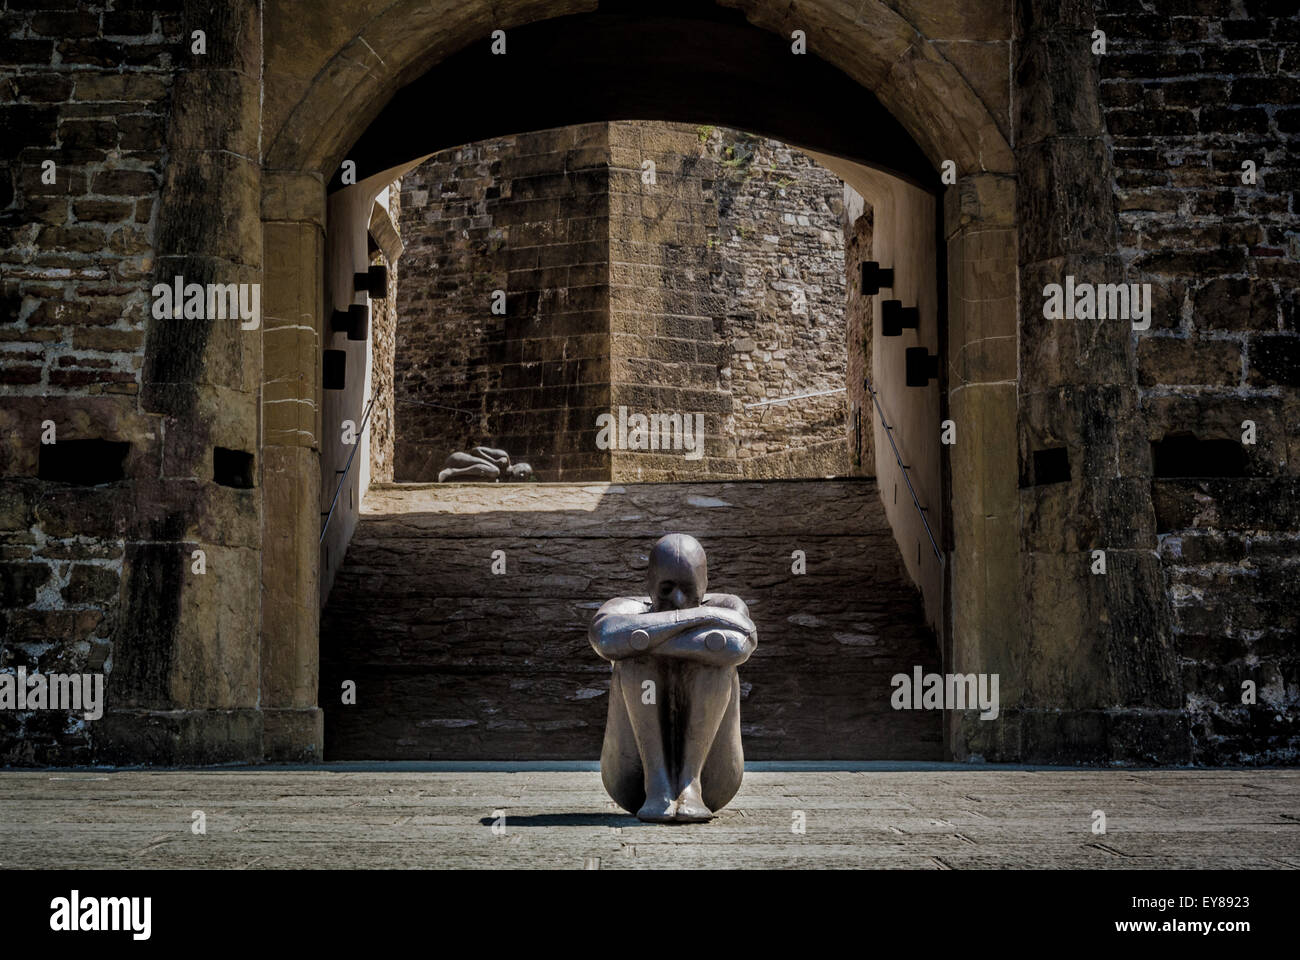 Antony Gormley  HUMAN sculpture exhibition at  Forte di Belvedere, Florence, Italy - Stock Image